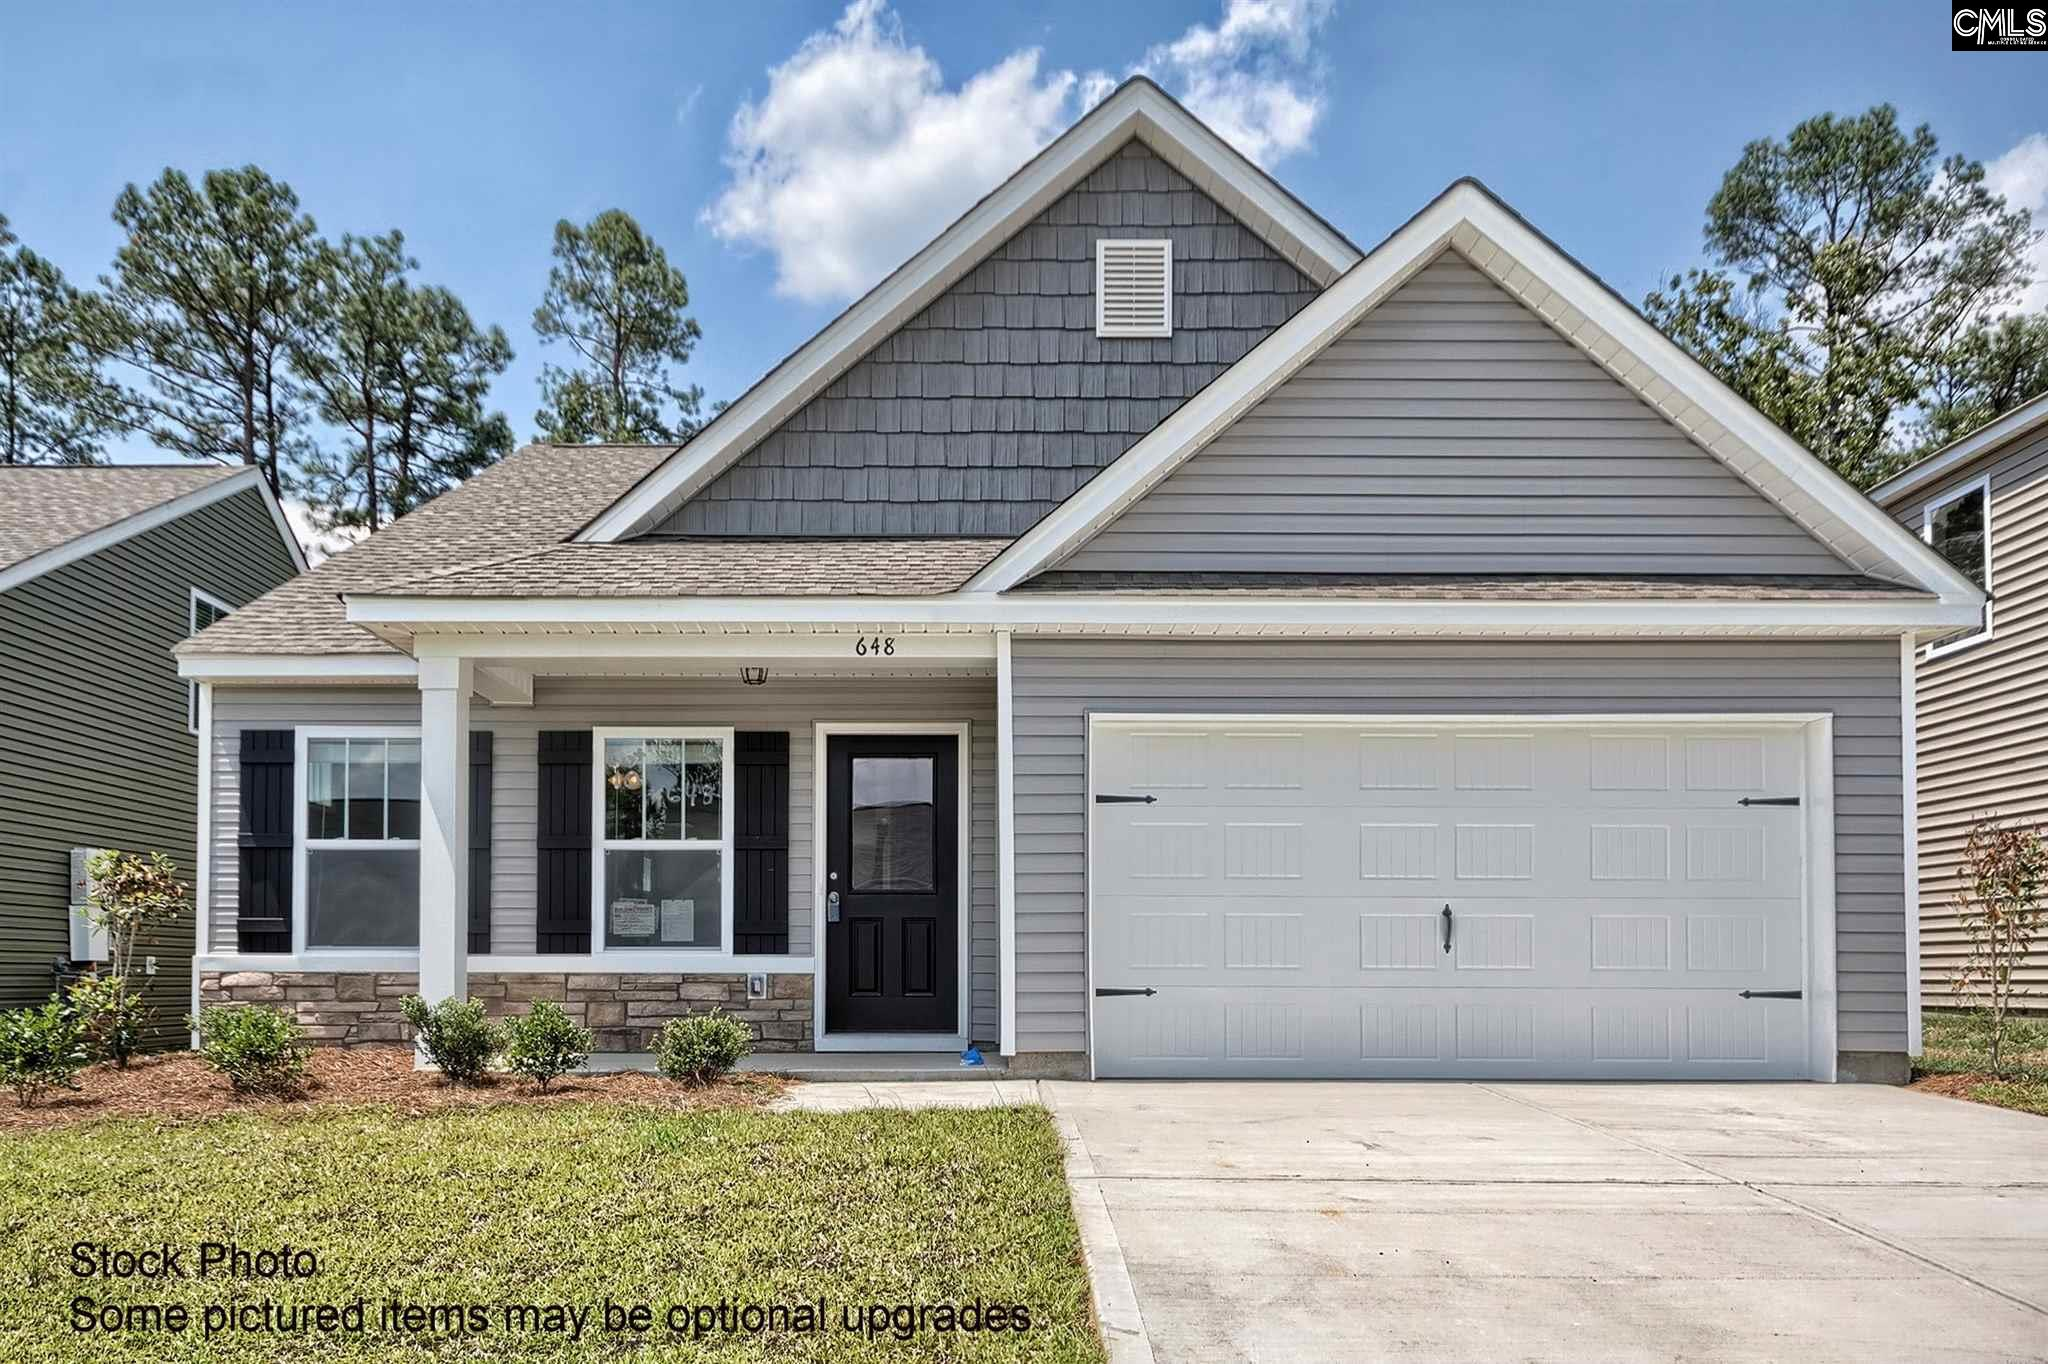 208 Cassique (lot 74) Lexington, SC 29073